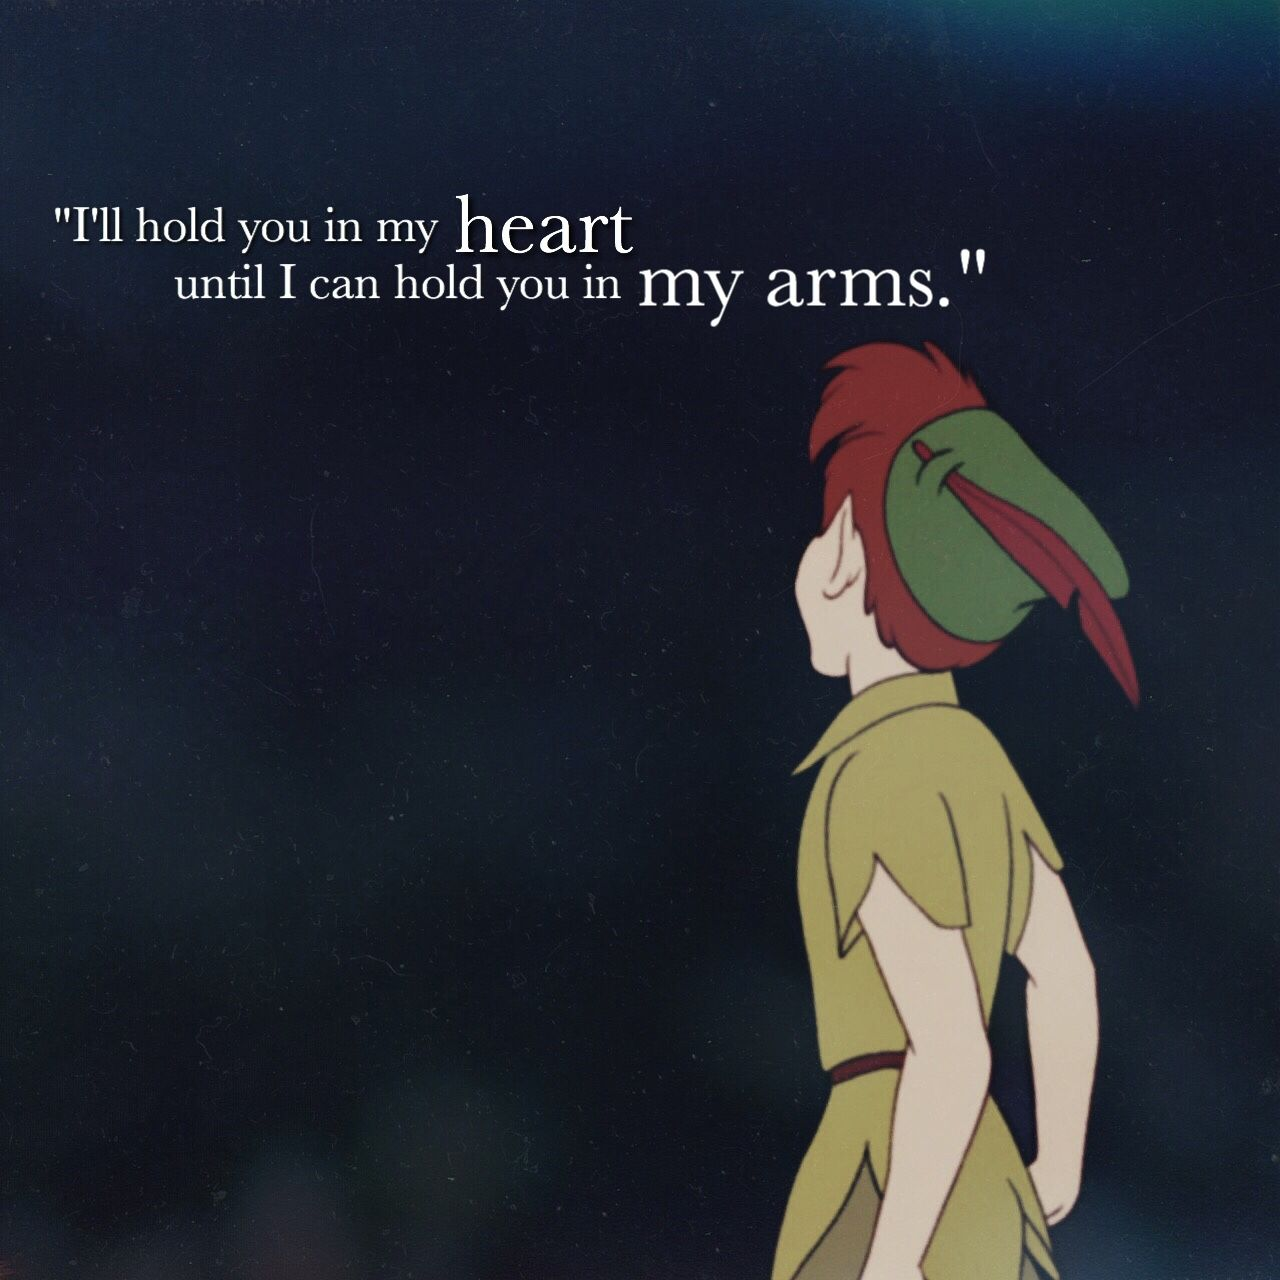 Iphone wallpaper tumblr peter pan - I Will Hold You In My Heart Until I Can Hold You In My Arms Peter Pan